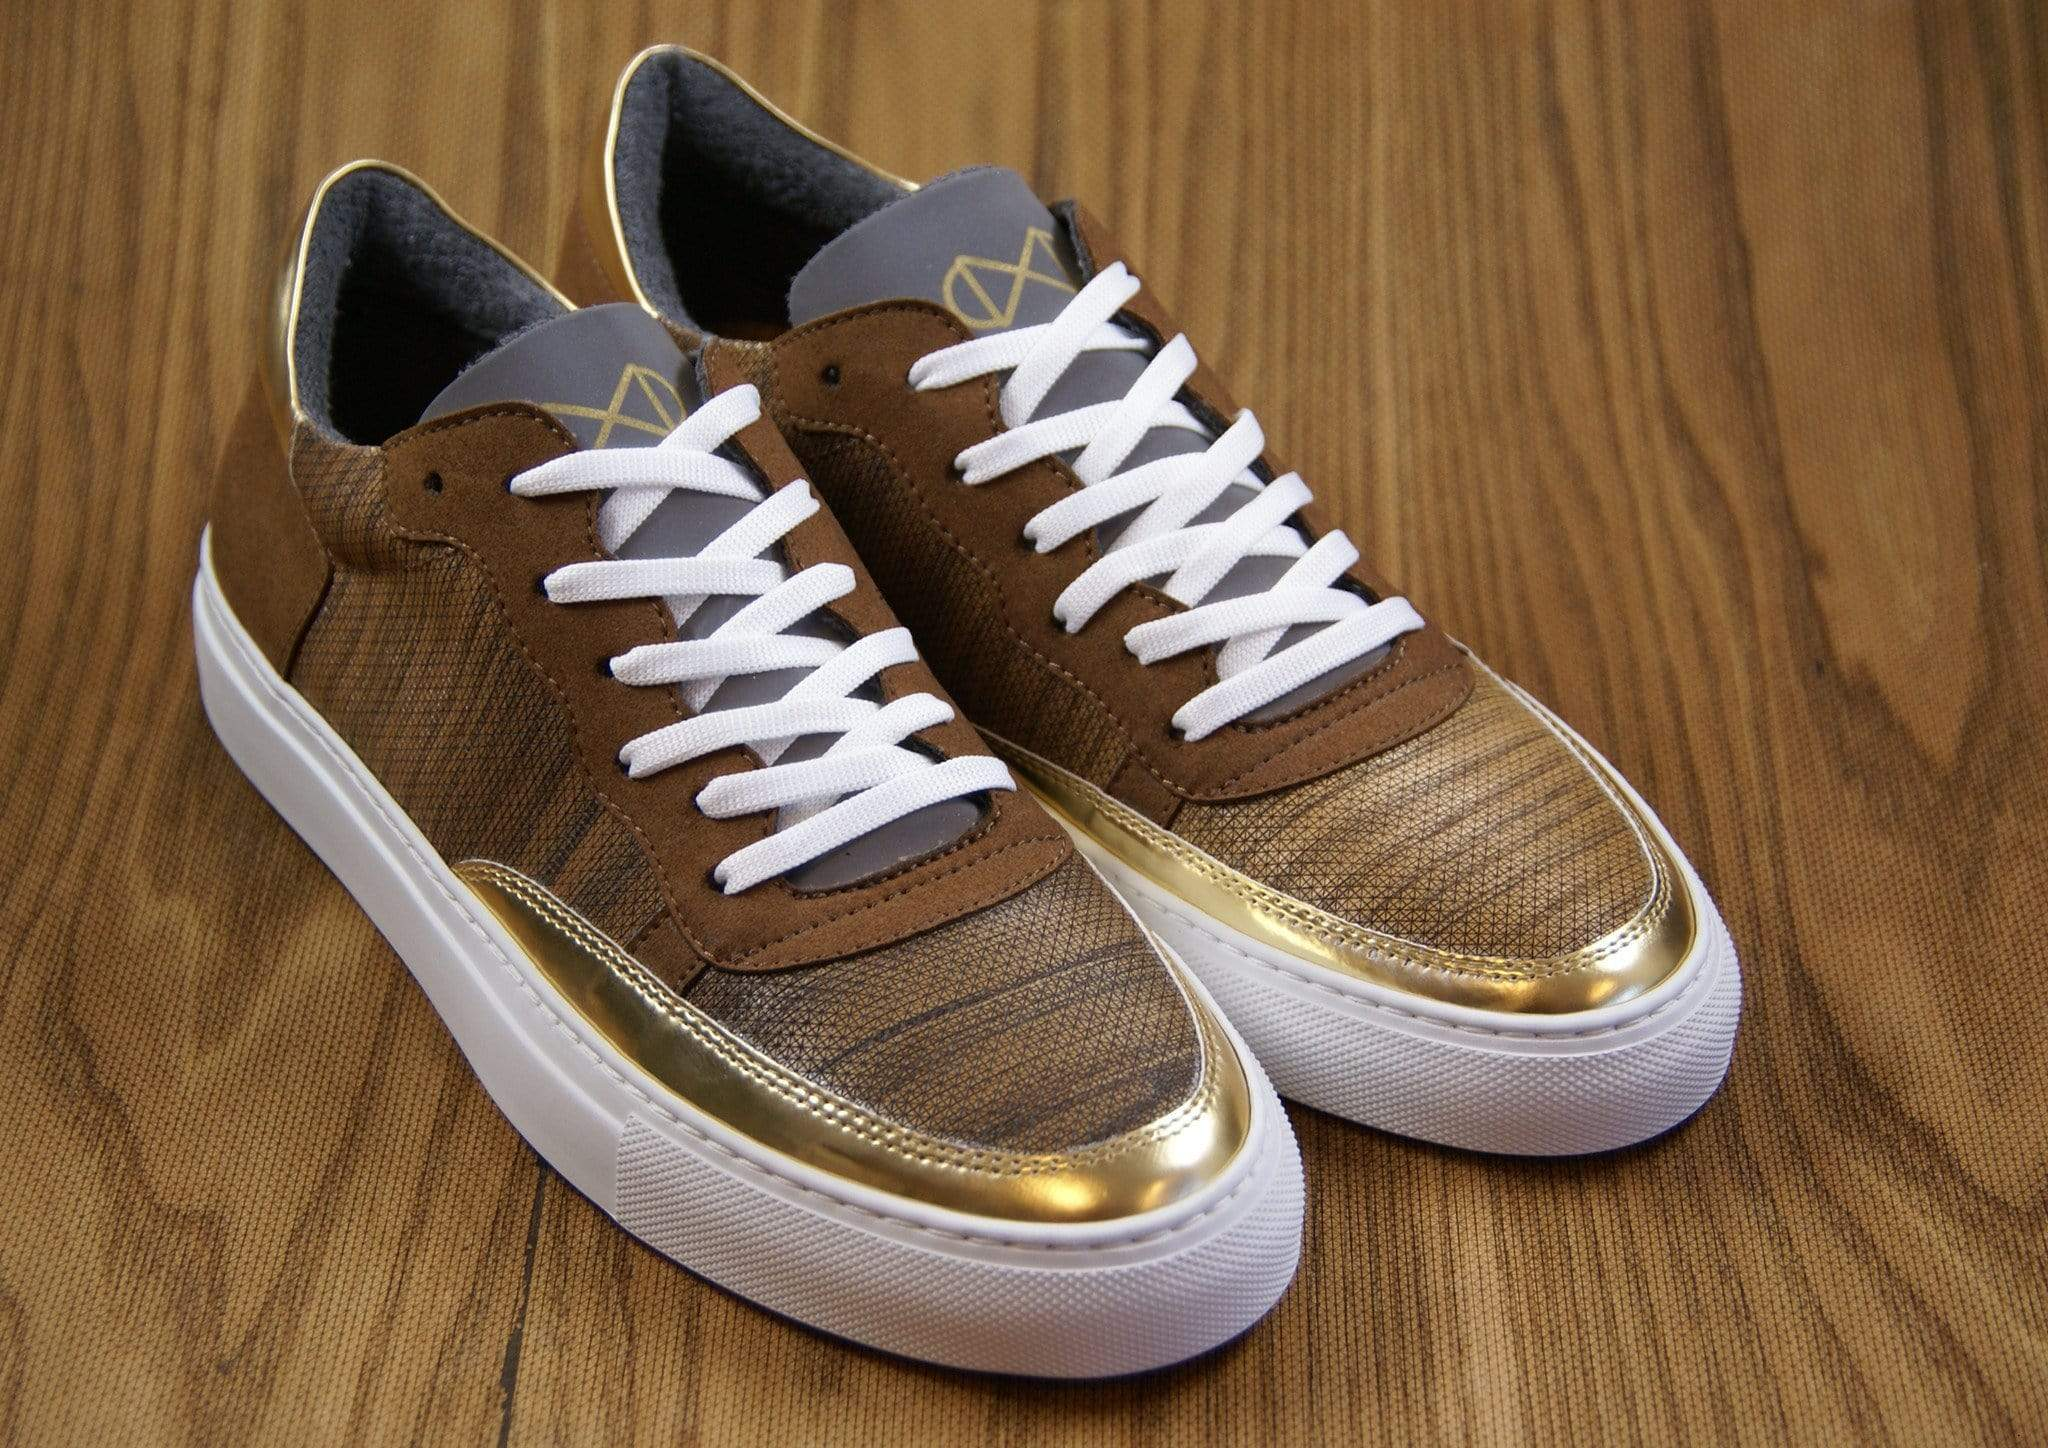 NAT 2 shoe Wood Sneakers. Real Wood, Reflective Glass and Mircofiber from Recycled PET. sustainable fashion ethical fashion